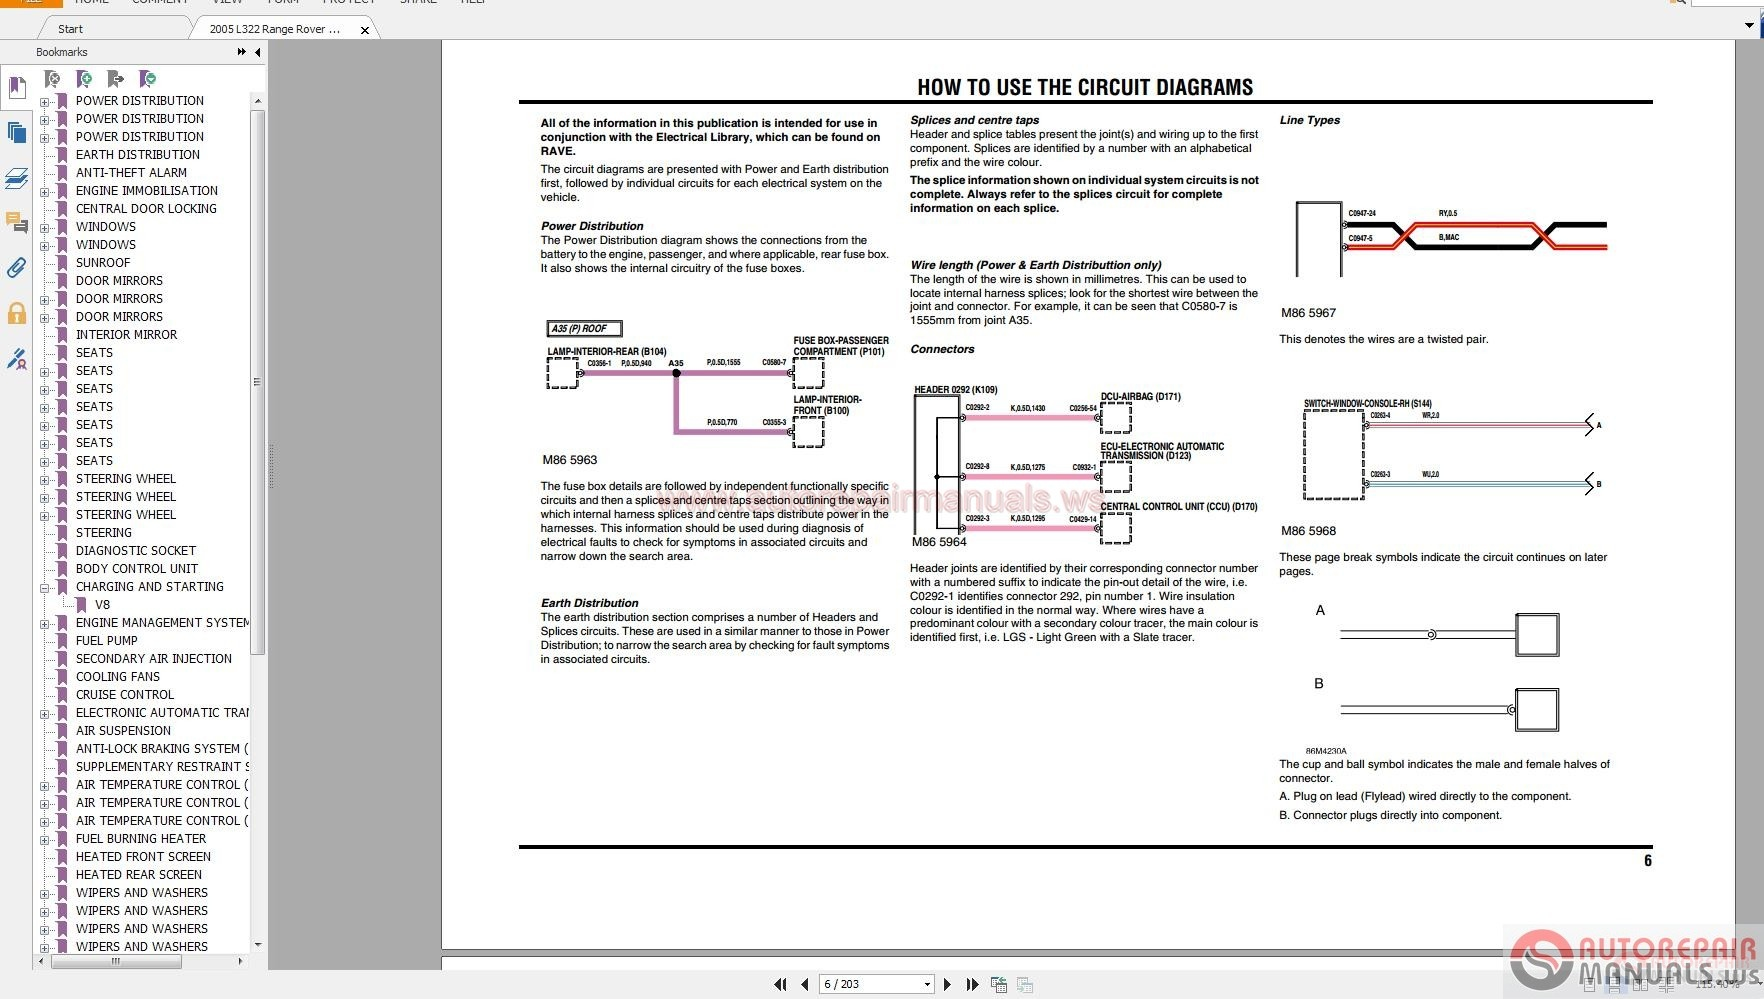 Land rover range rover nas 2005 2008 electrical circuit diagrams img asfbconference2016 Gallery